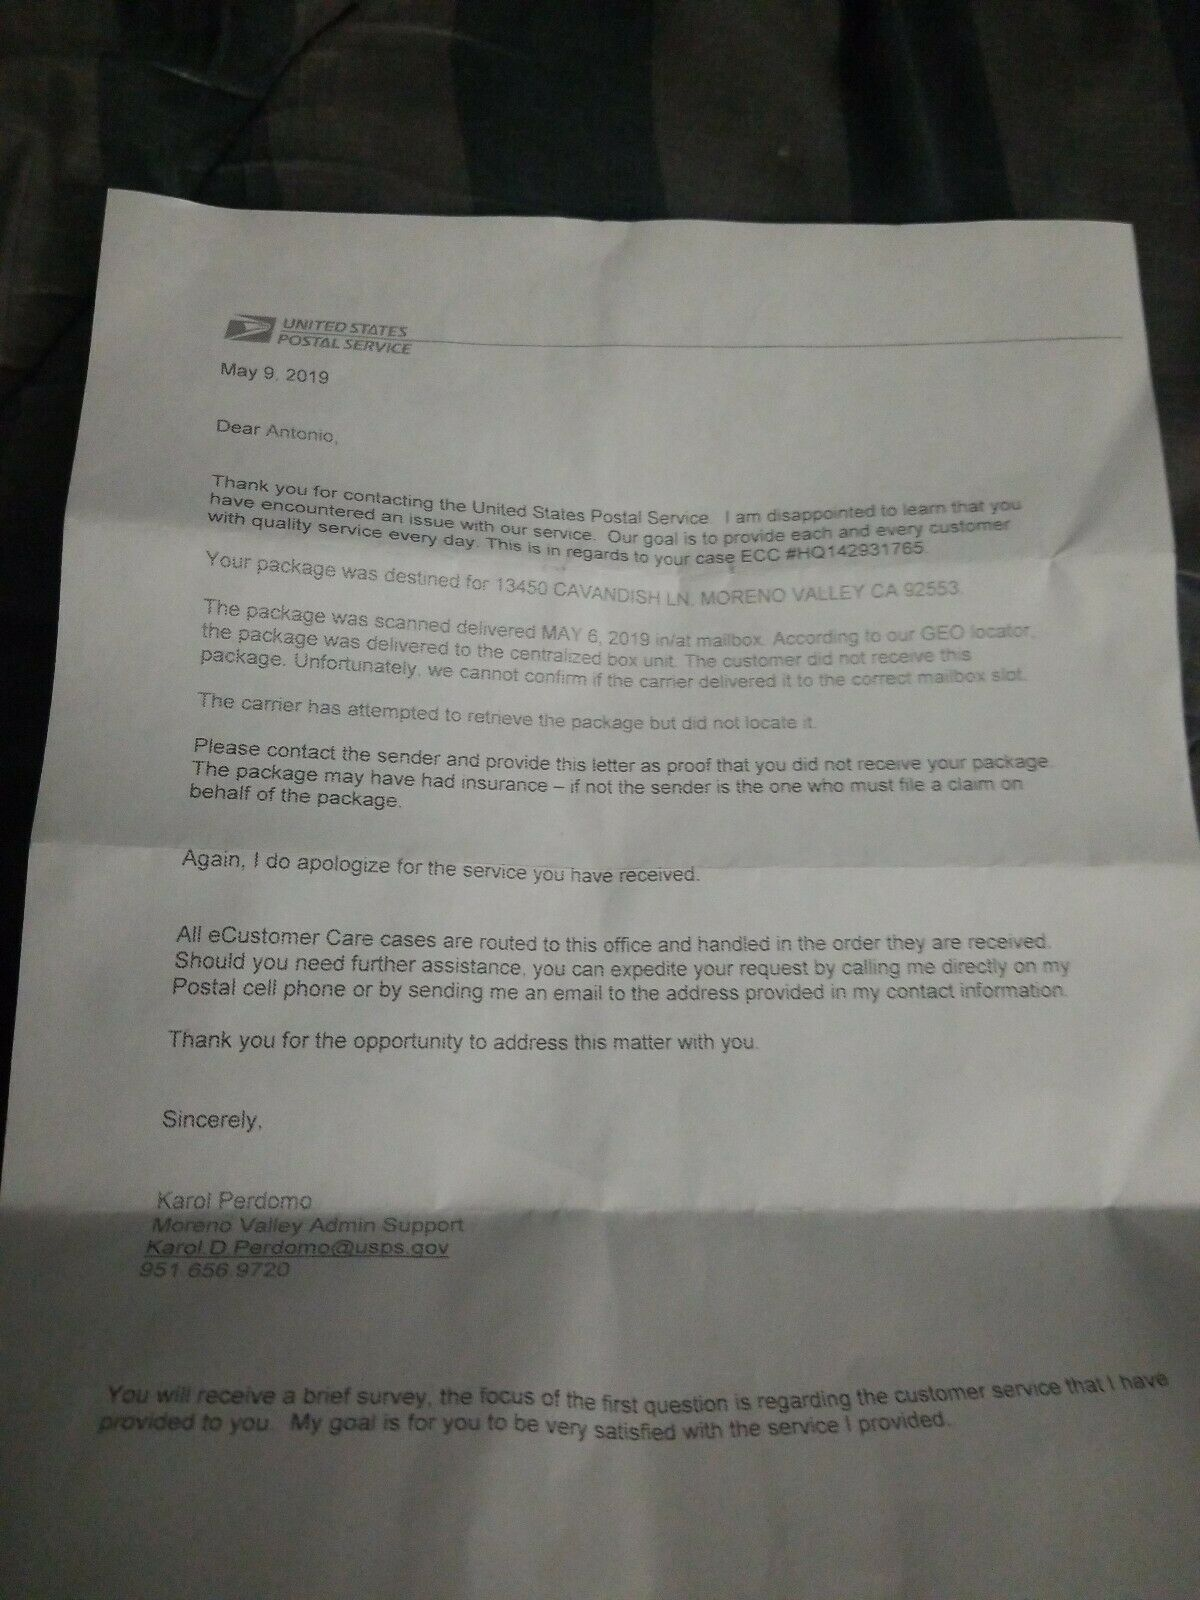 Customer Sent Me A Supposed Letter From Usps But Its Suspicious